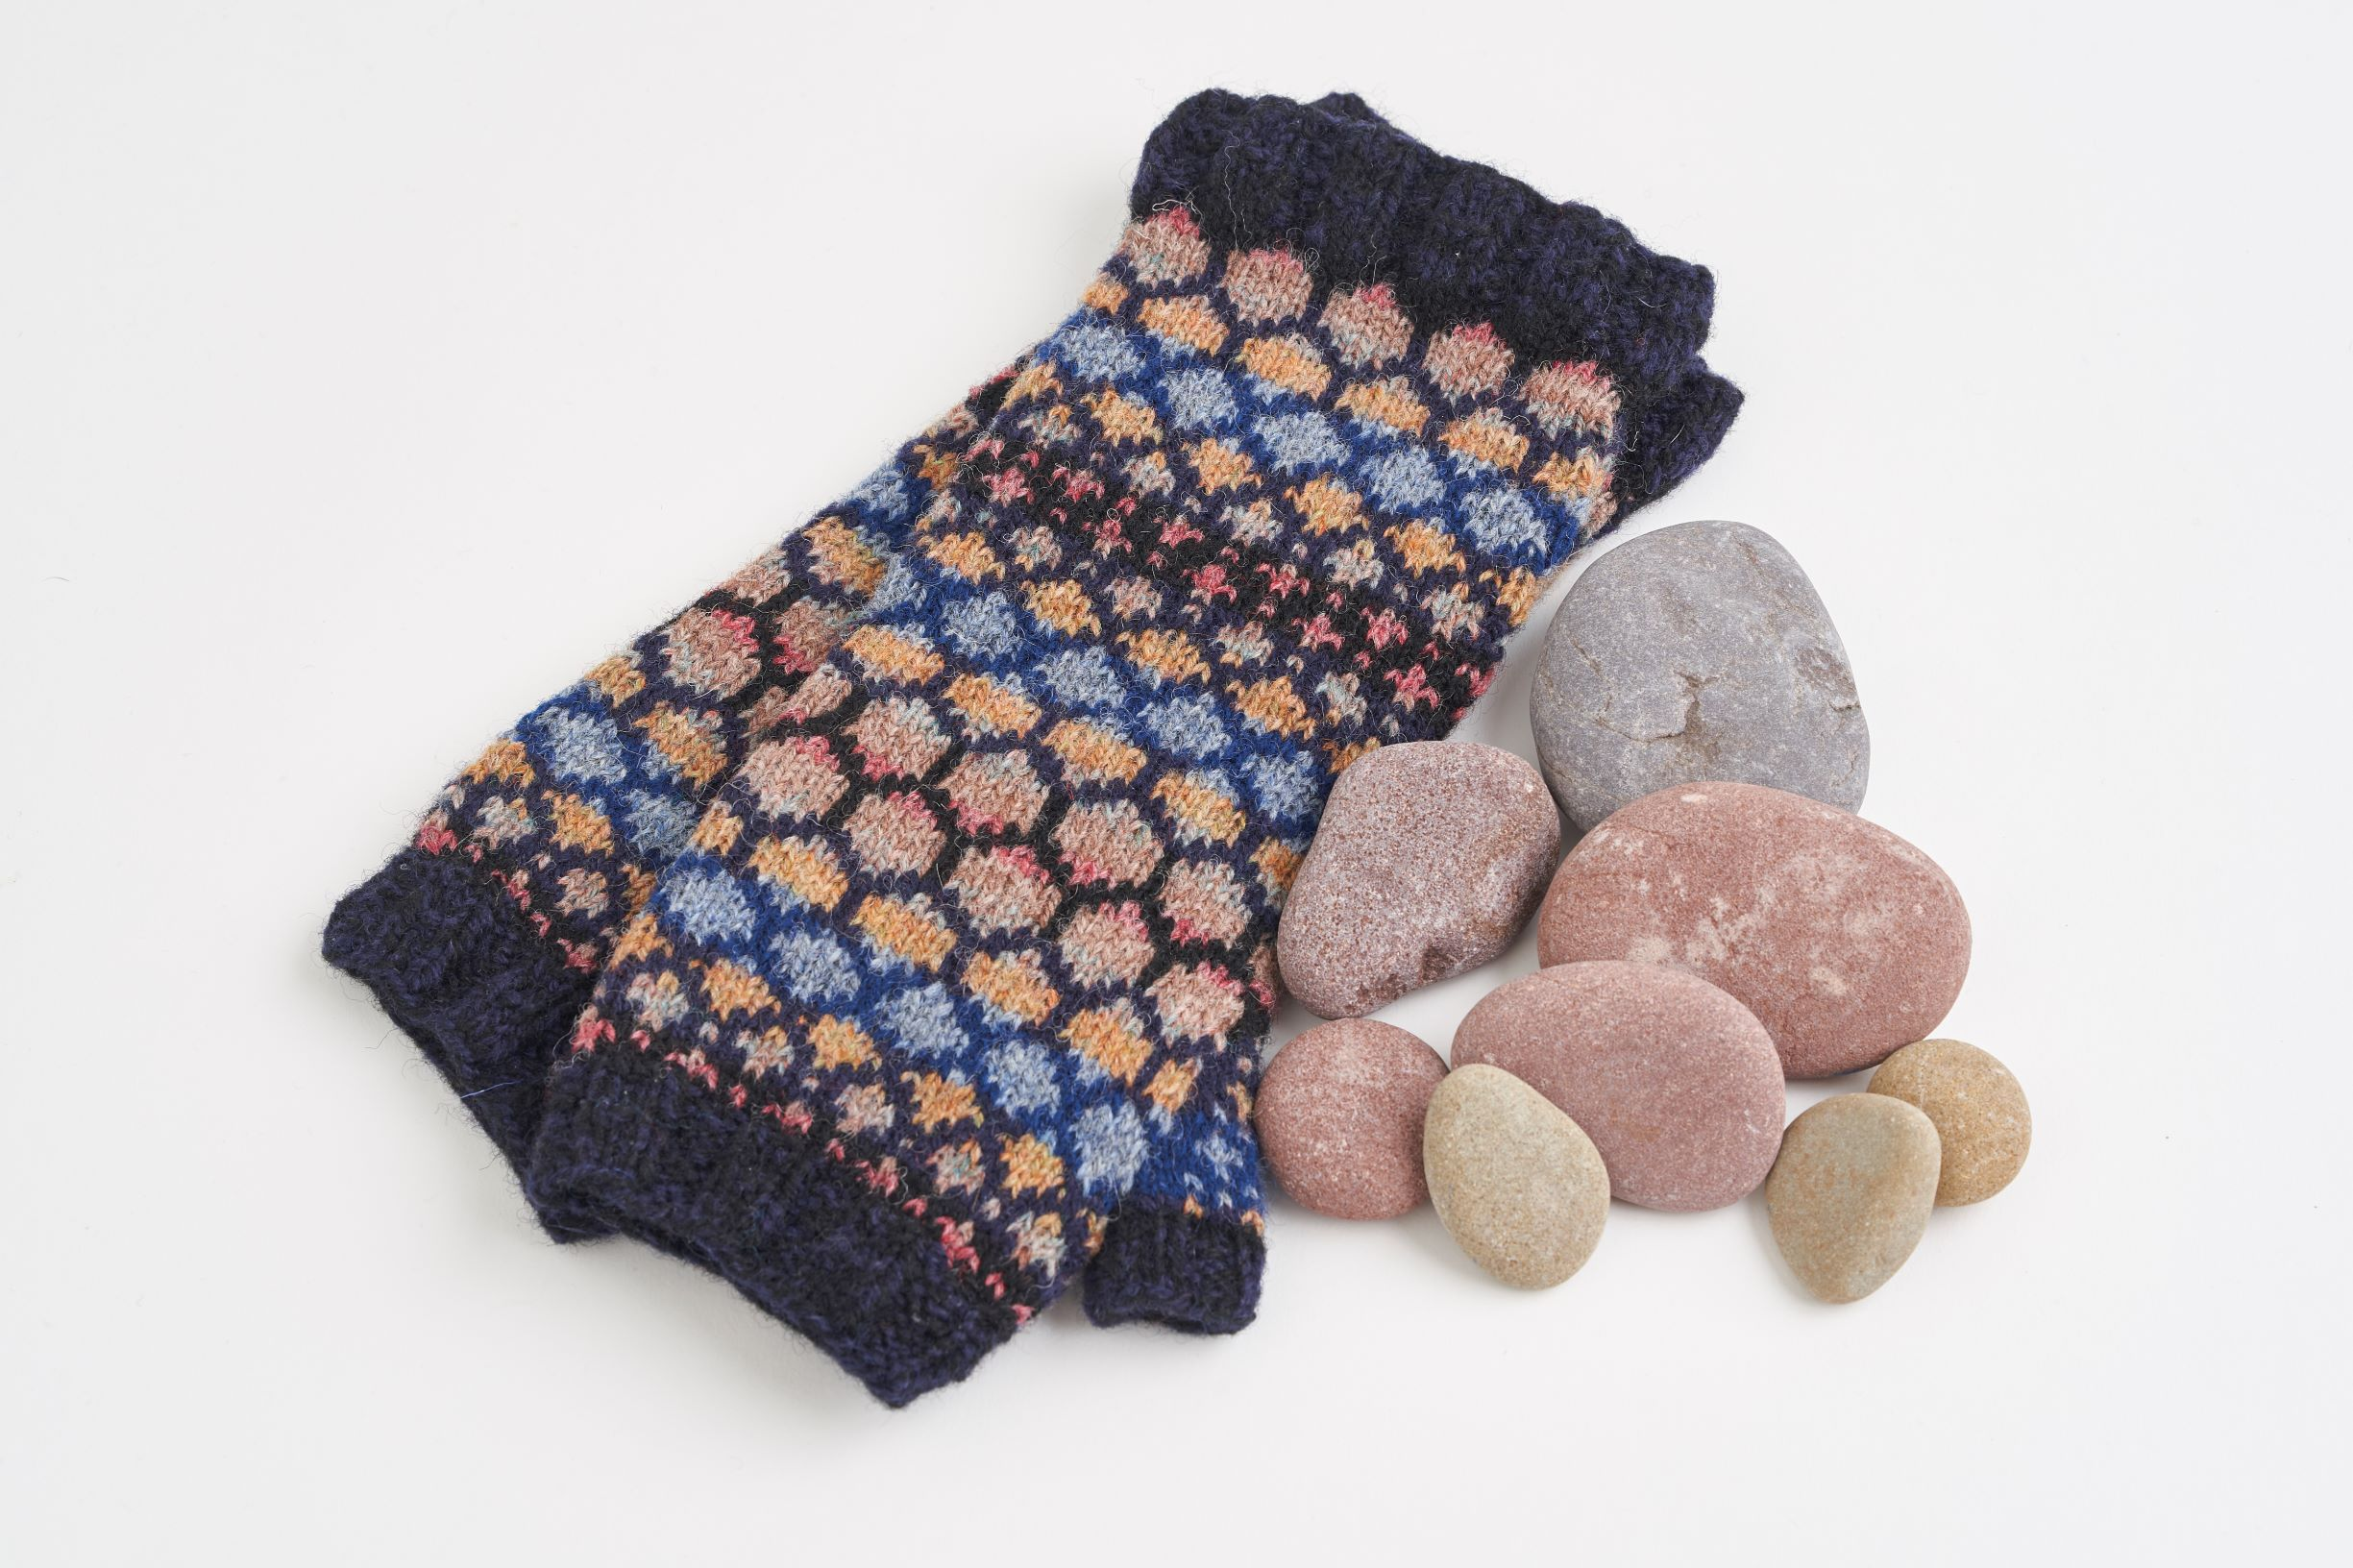 The Stone colourway was inspired by beach stones, which, when you look closely, are anything but gray!